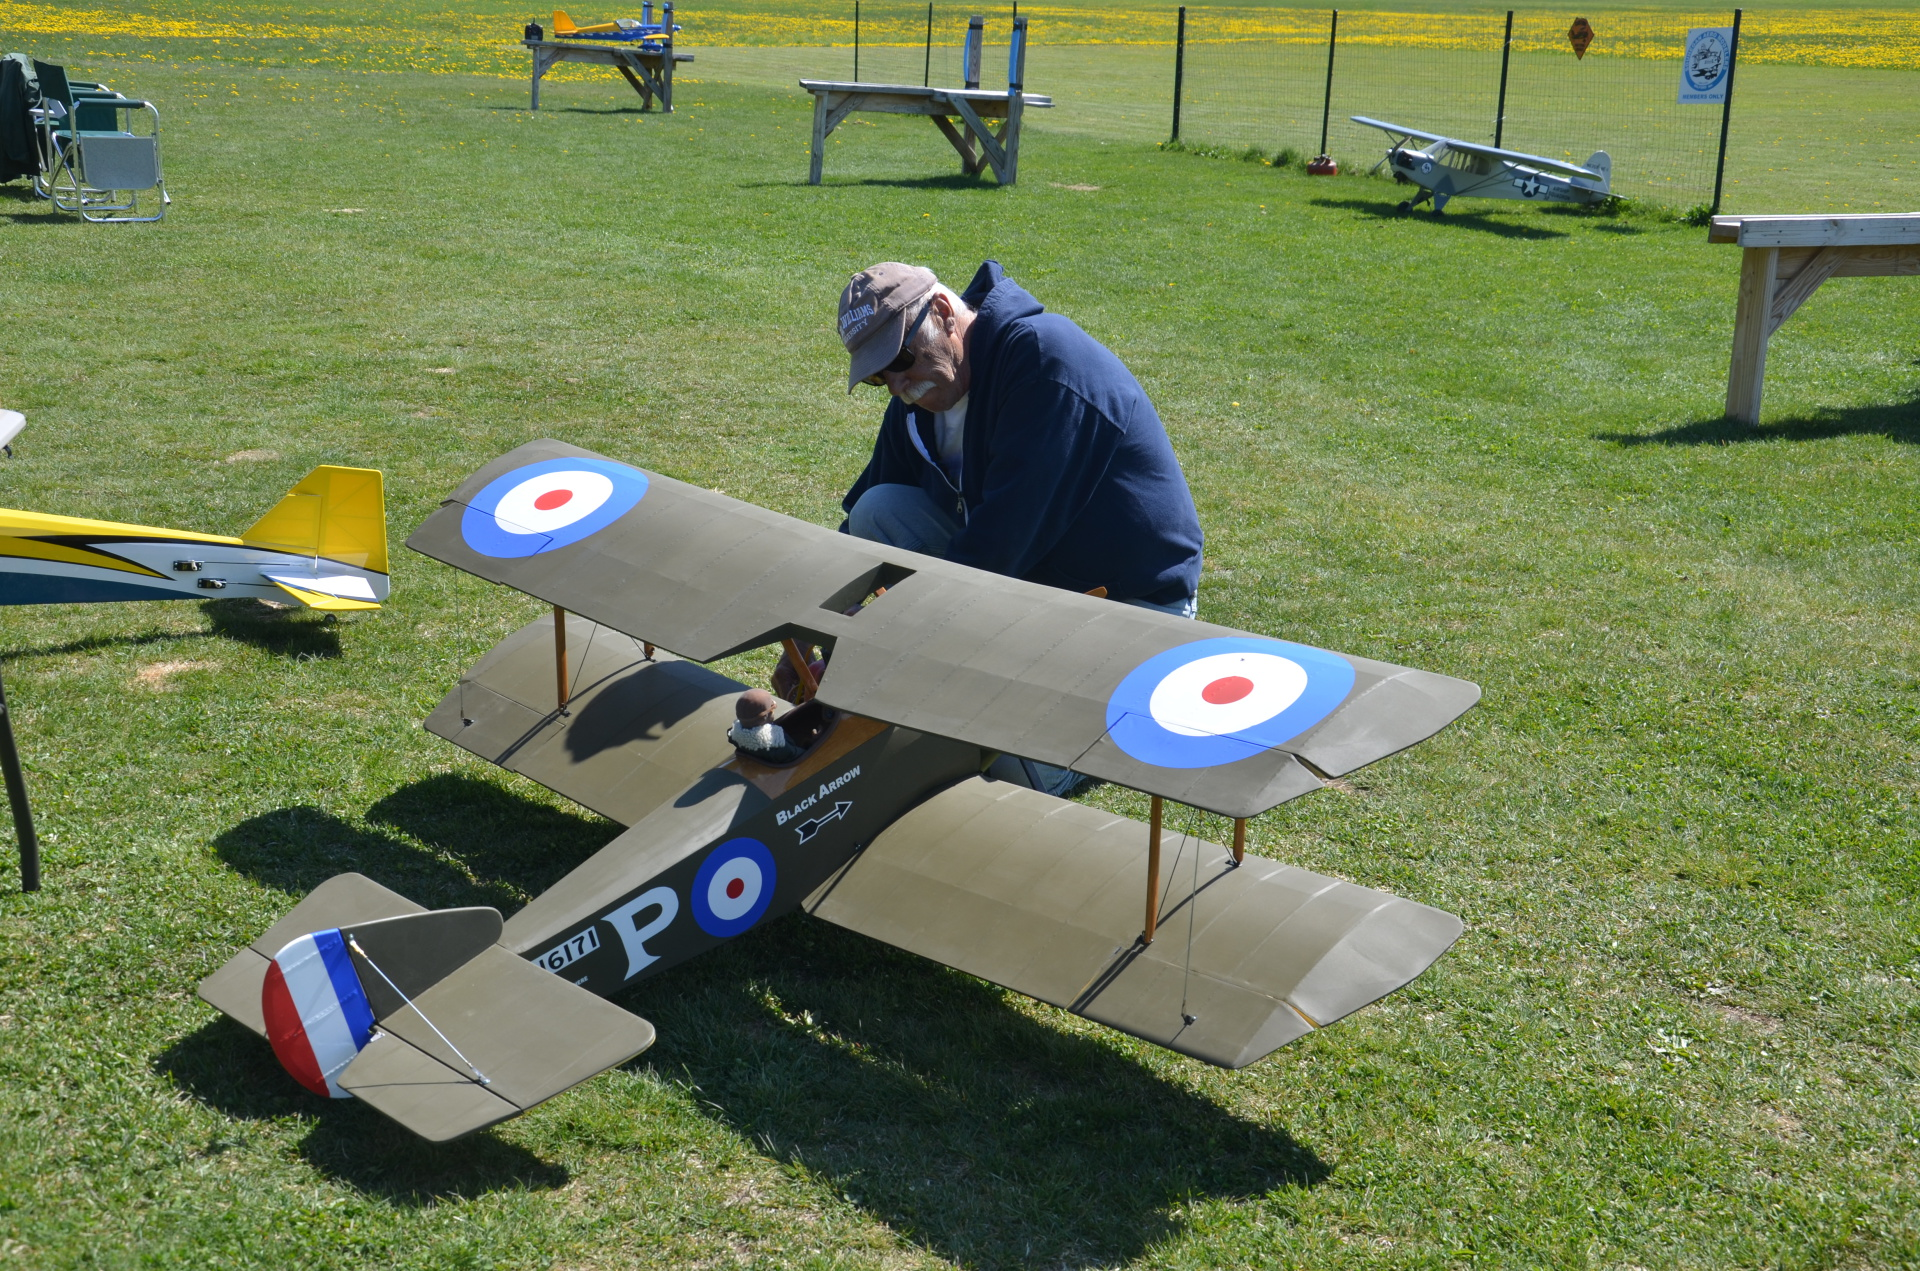 Frank Bove and Sopwith Pup